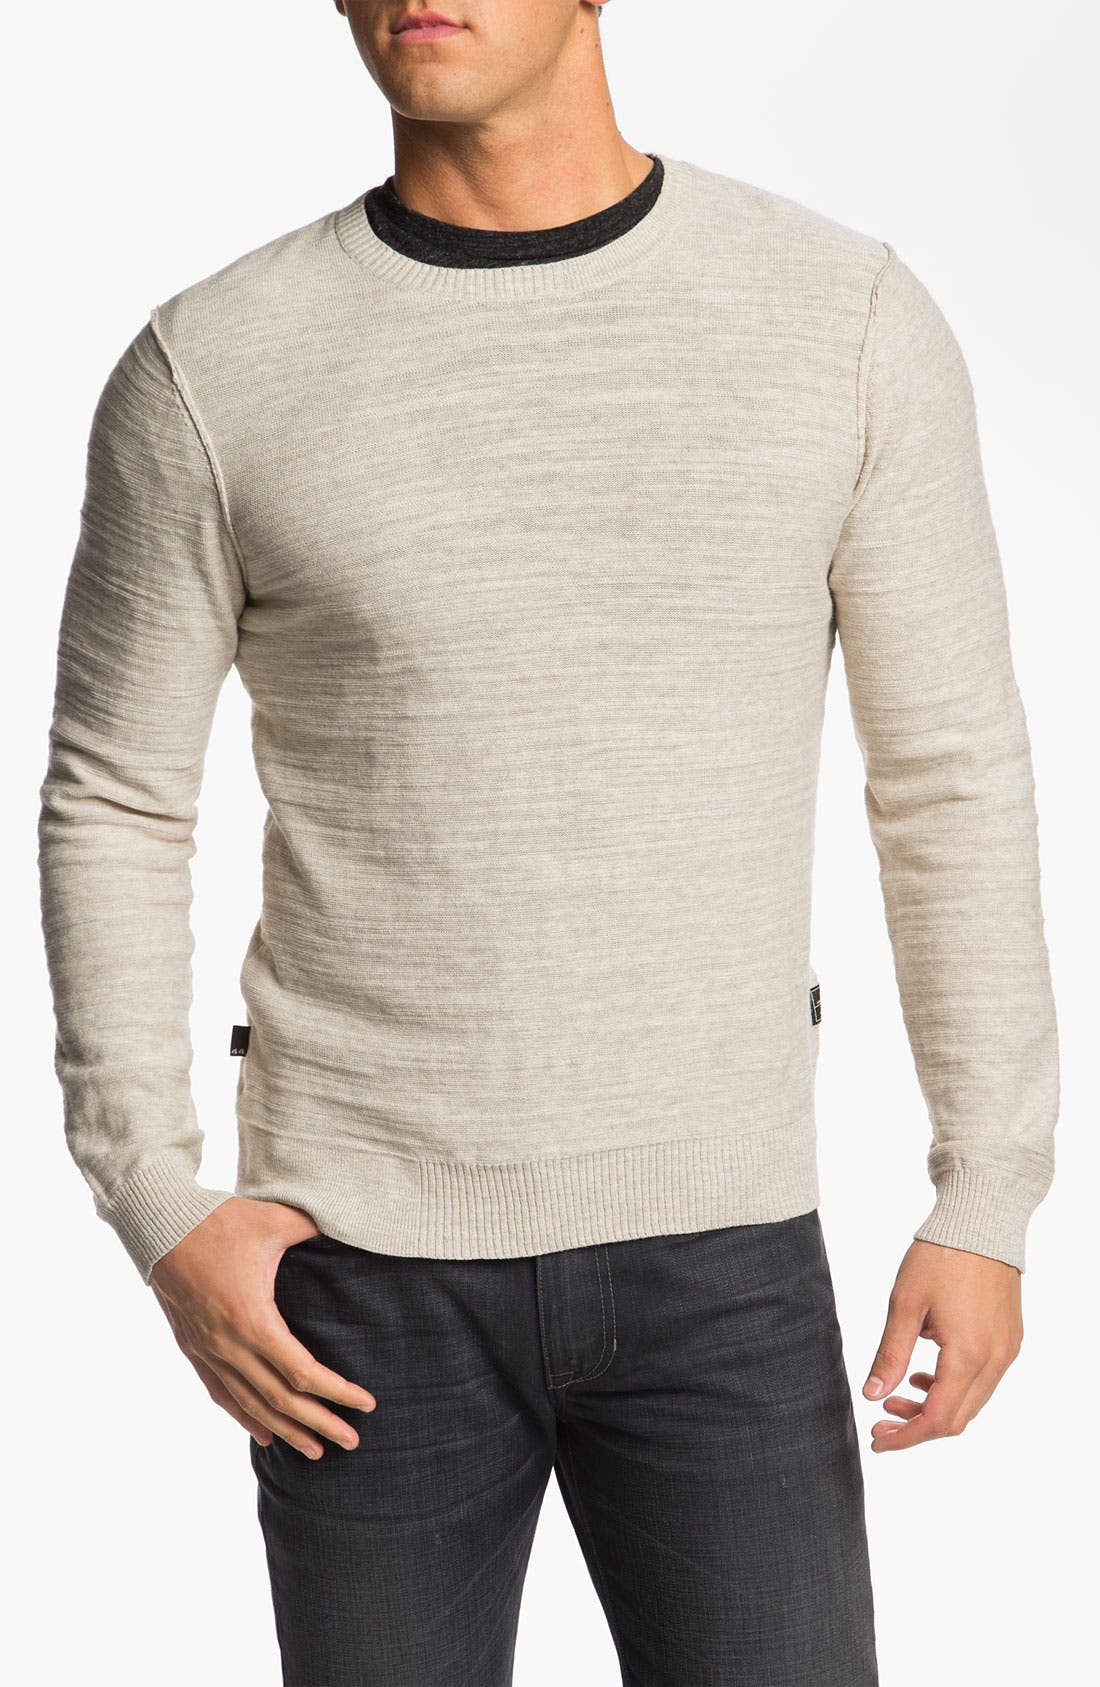 Main Image - R44 Rogan Standard Issue 'Enforcer' Crewneck Sweater